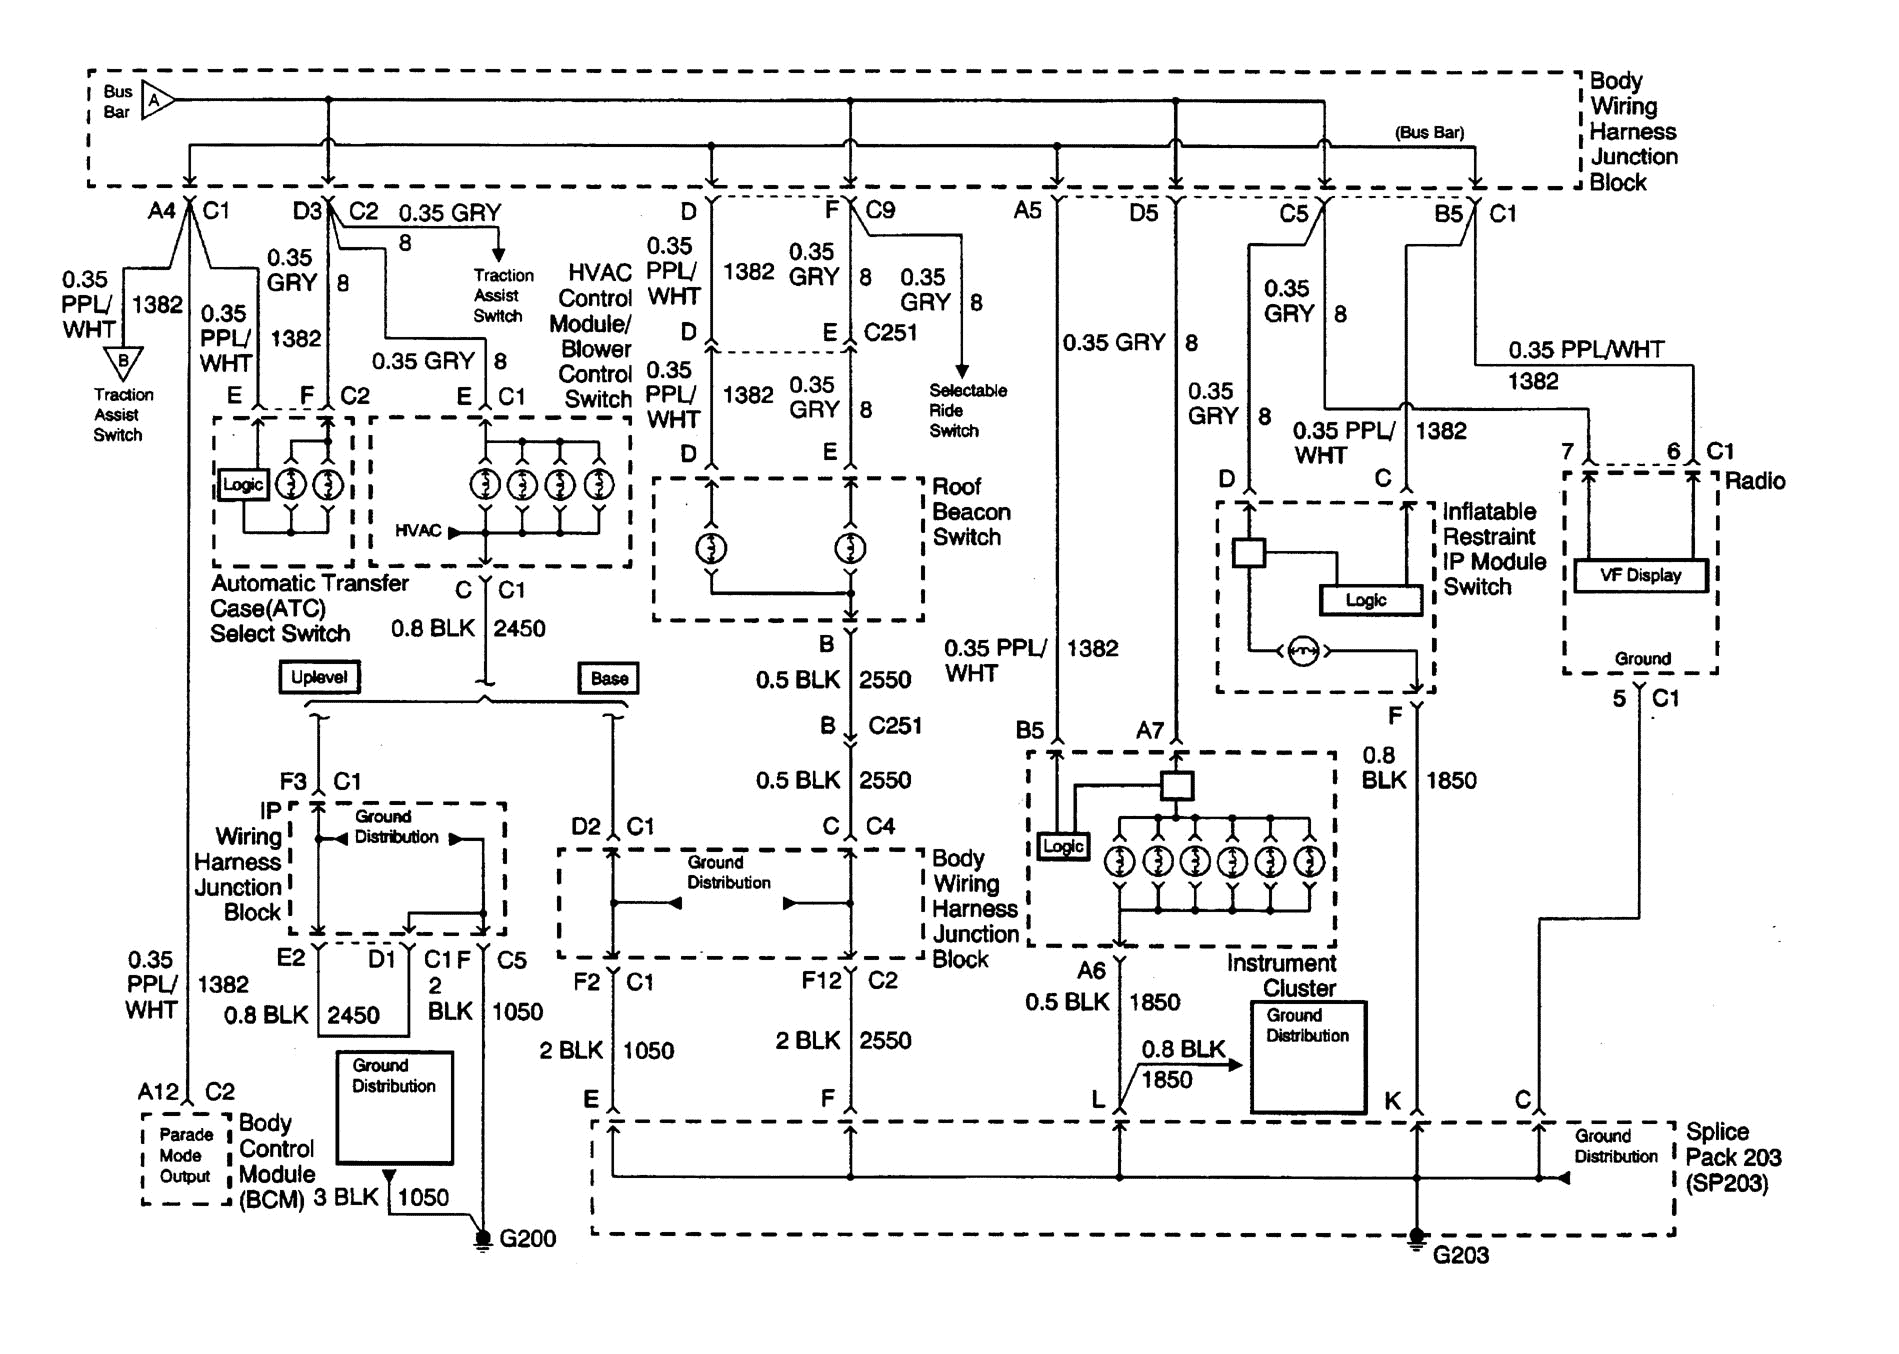 2005 Chevrolet Silverado Wiring Diagram from www.freeautomechanic.com